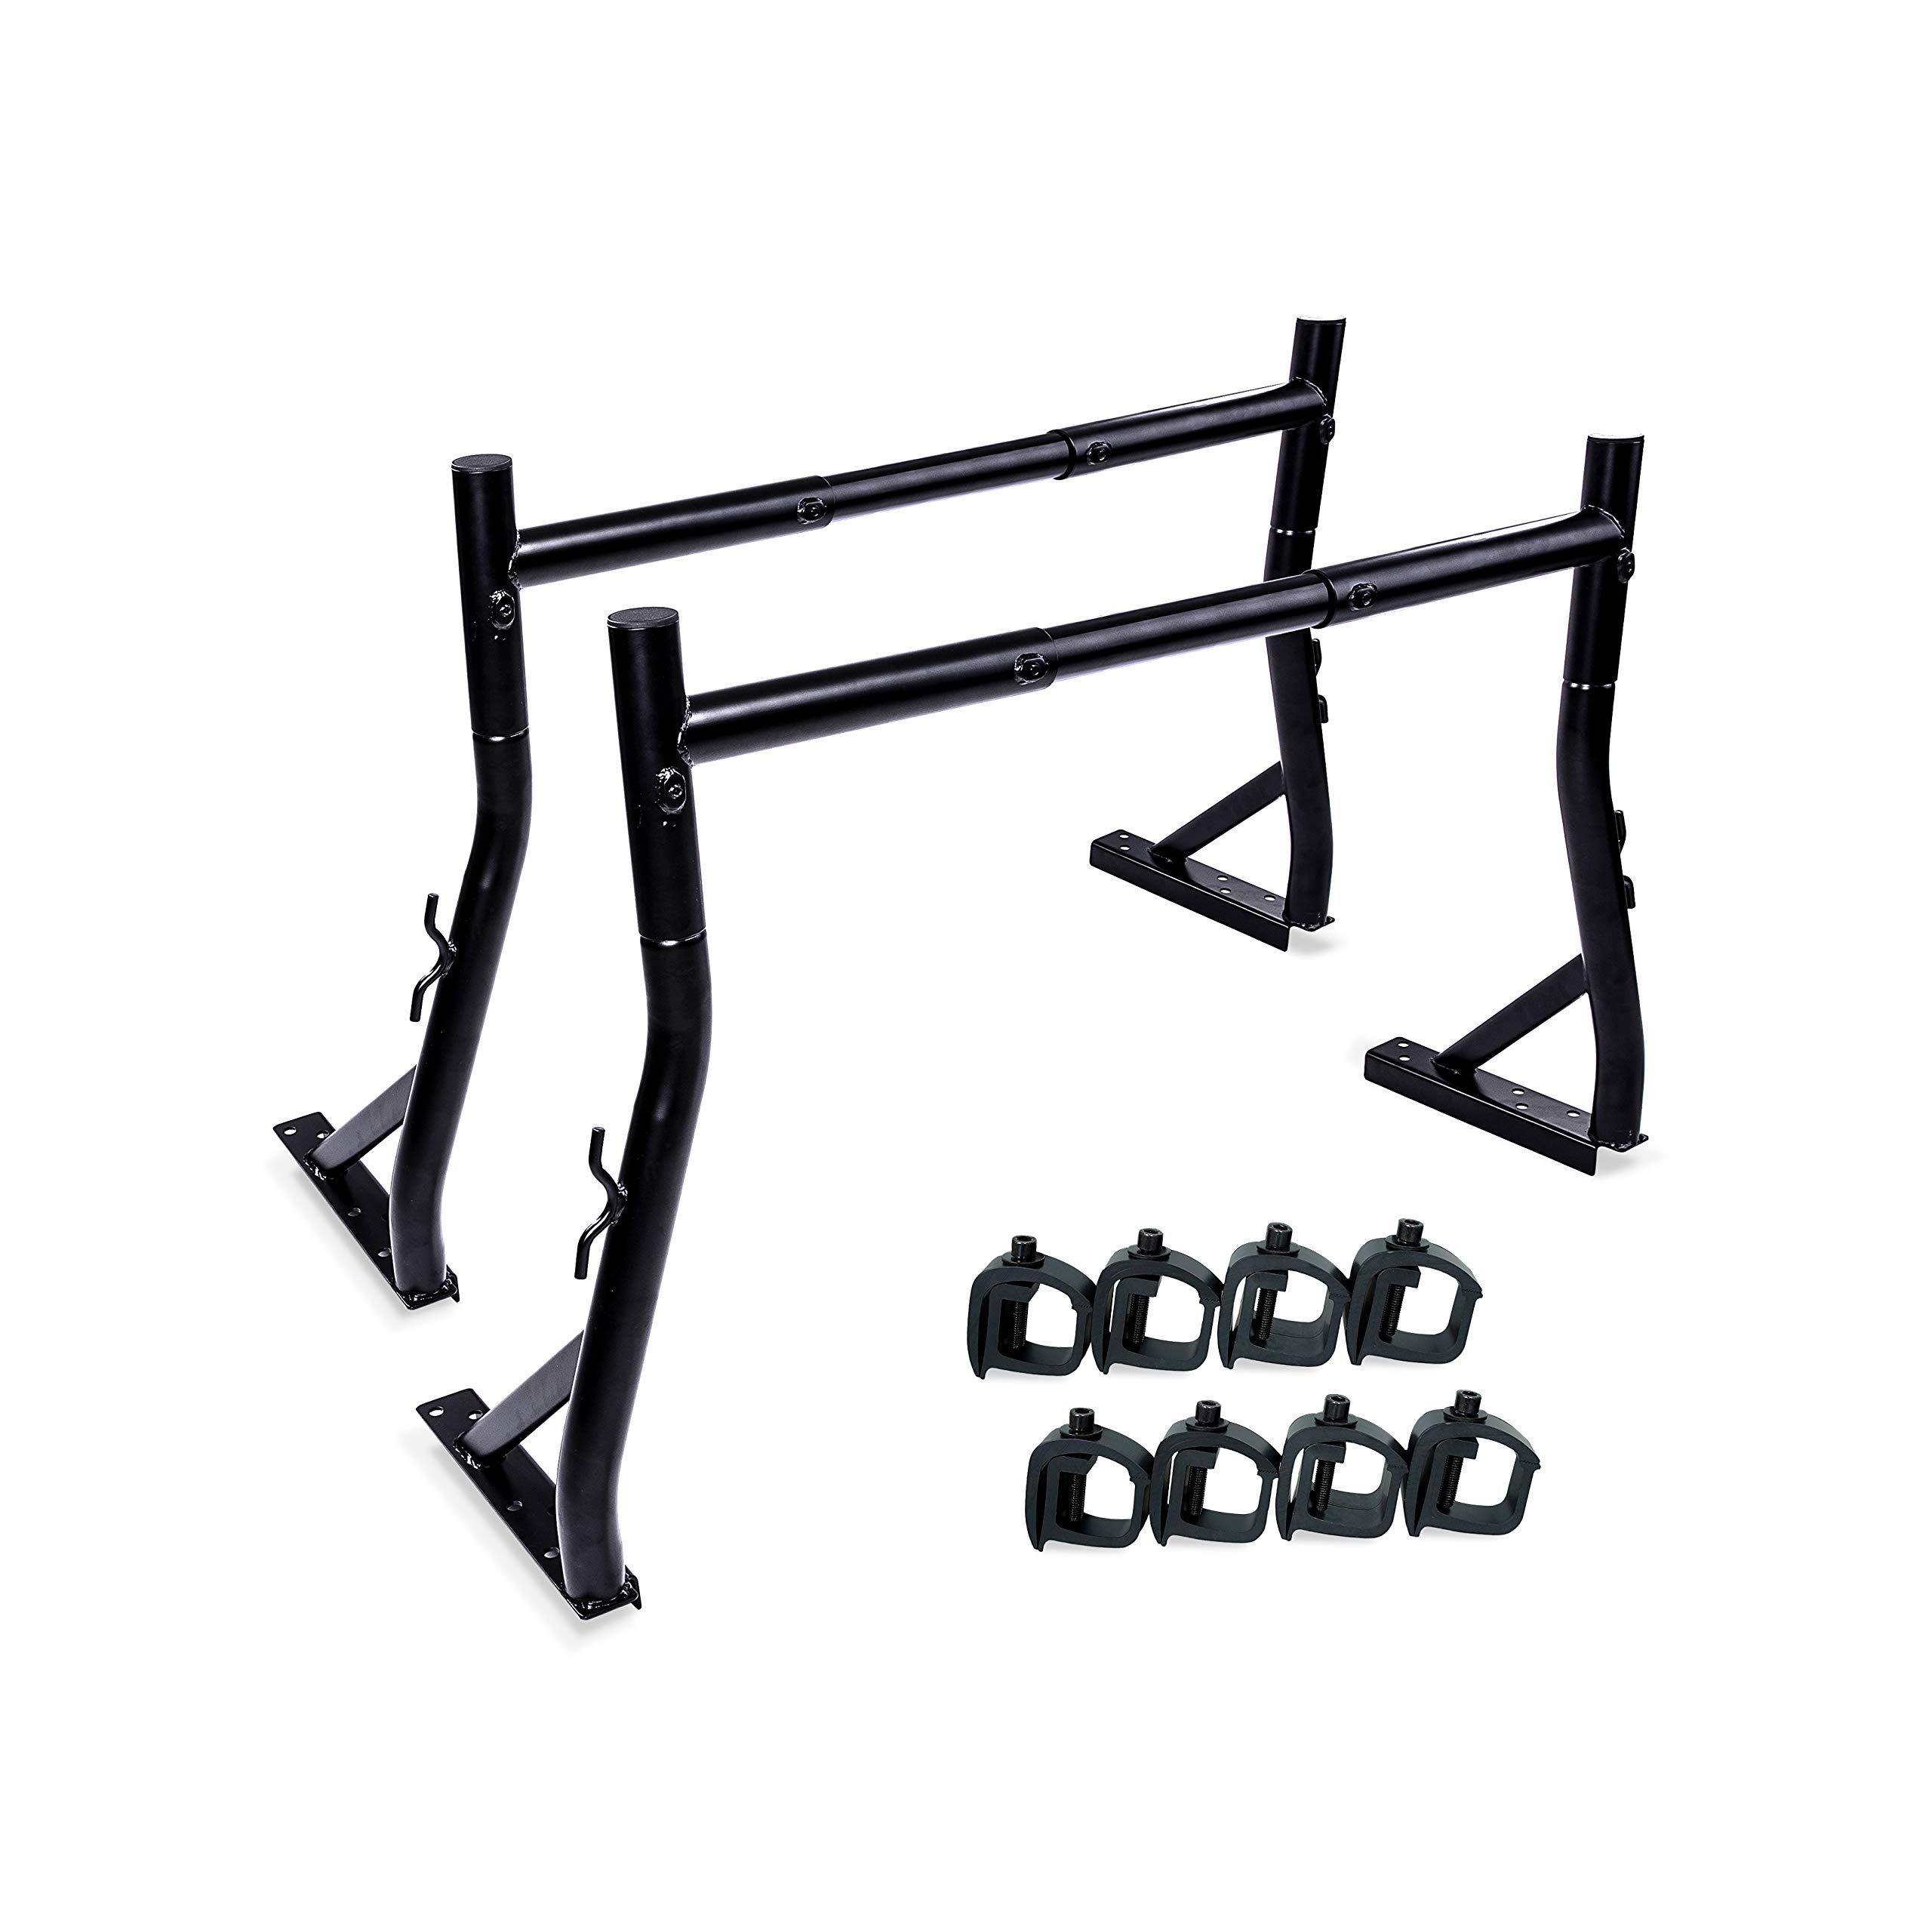 AA-Racks Model X34 Universal Truck Trailer Rack with (8) Non-Drilling C-Clamps Small Pick-up Truck Rack Ladder Lumper Utility